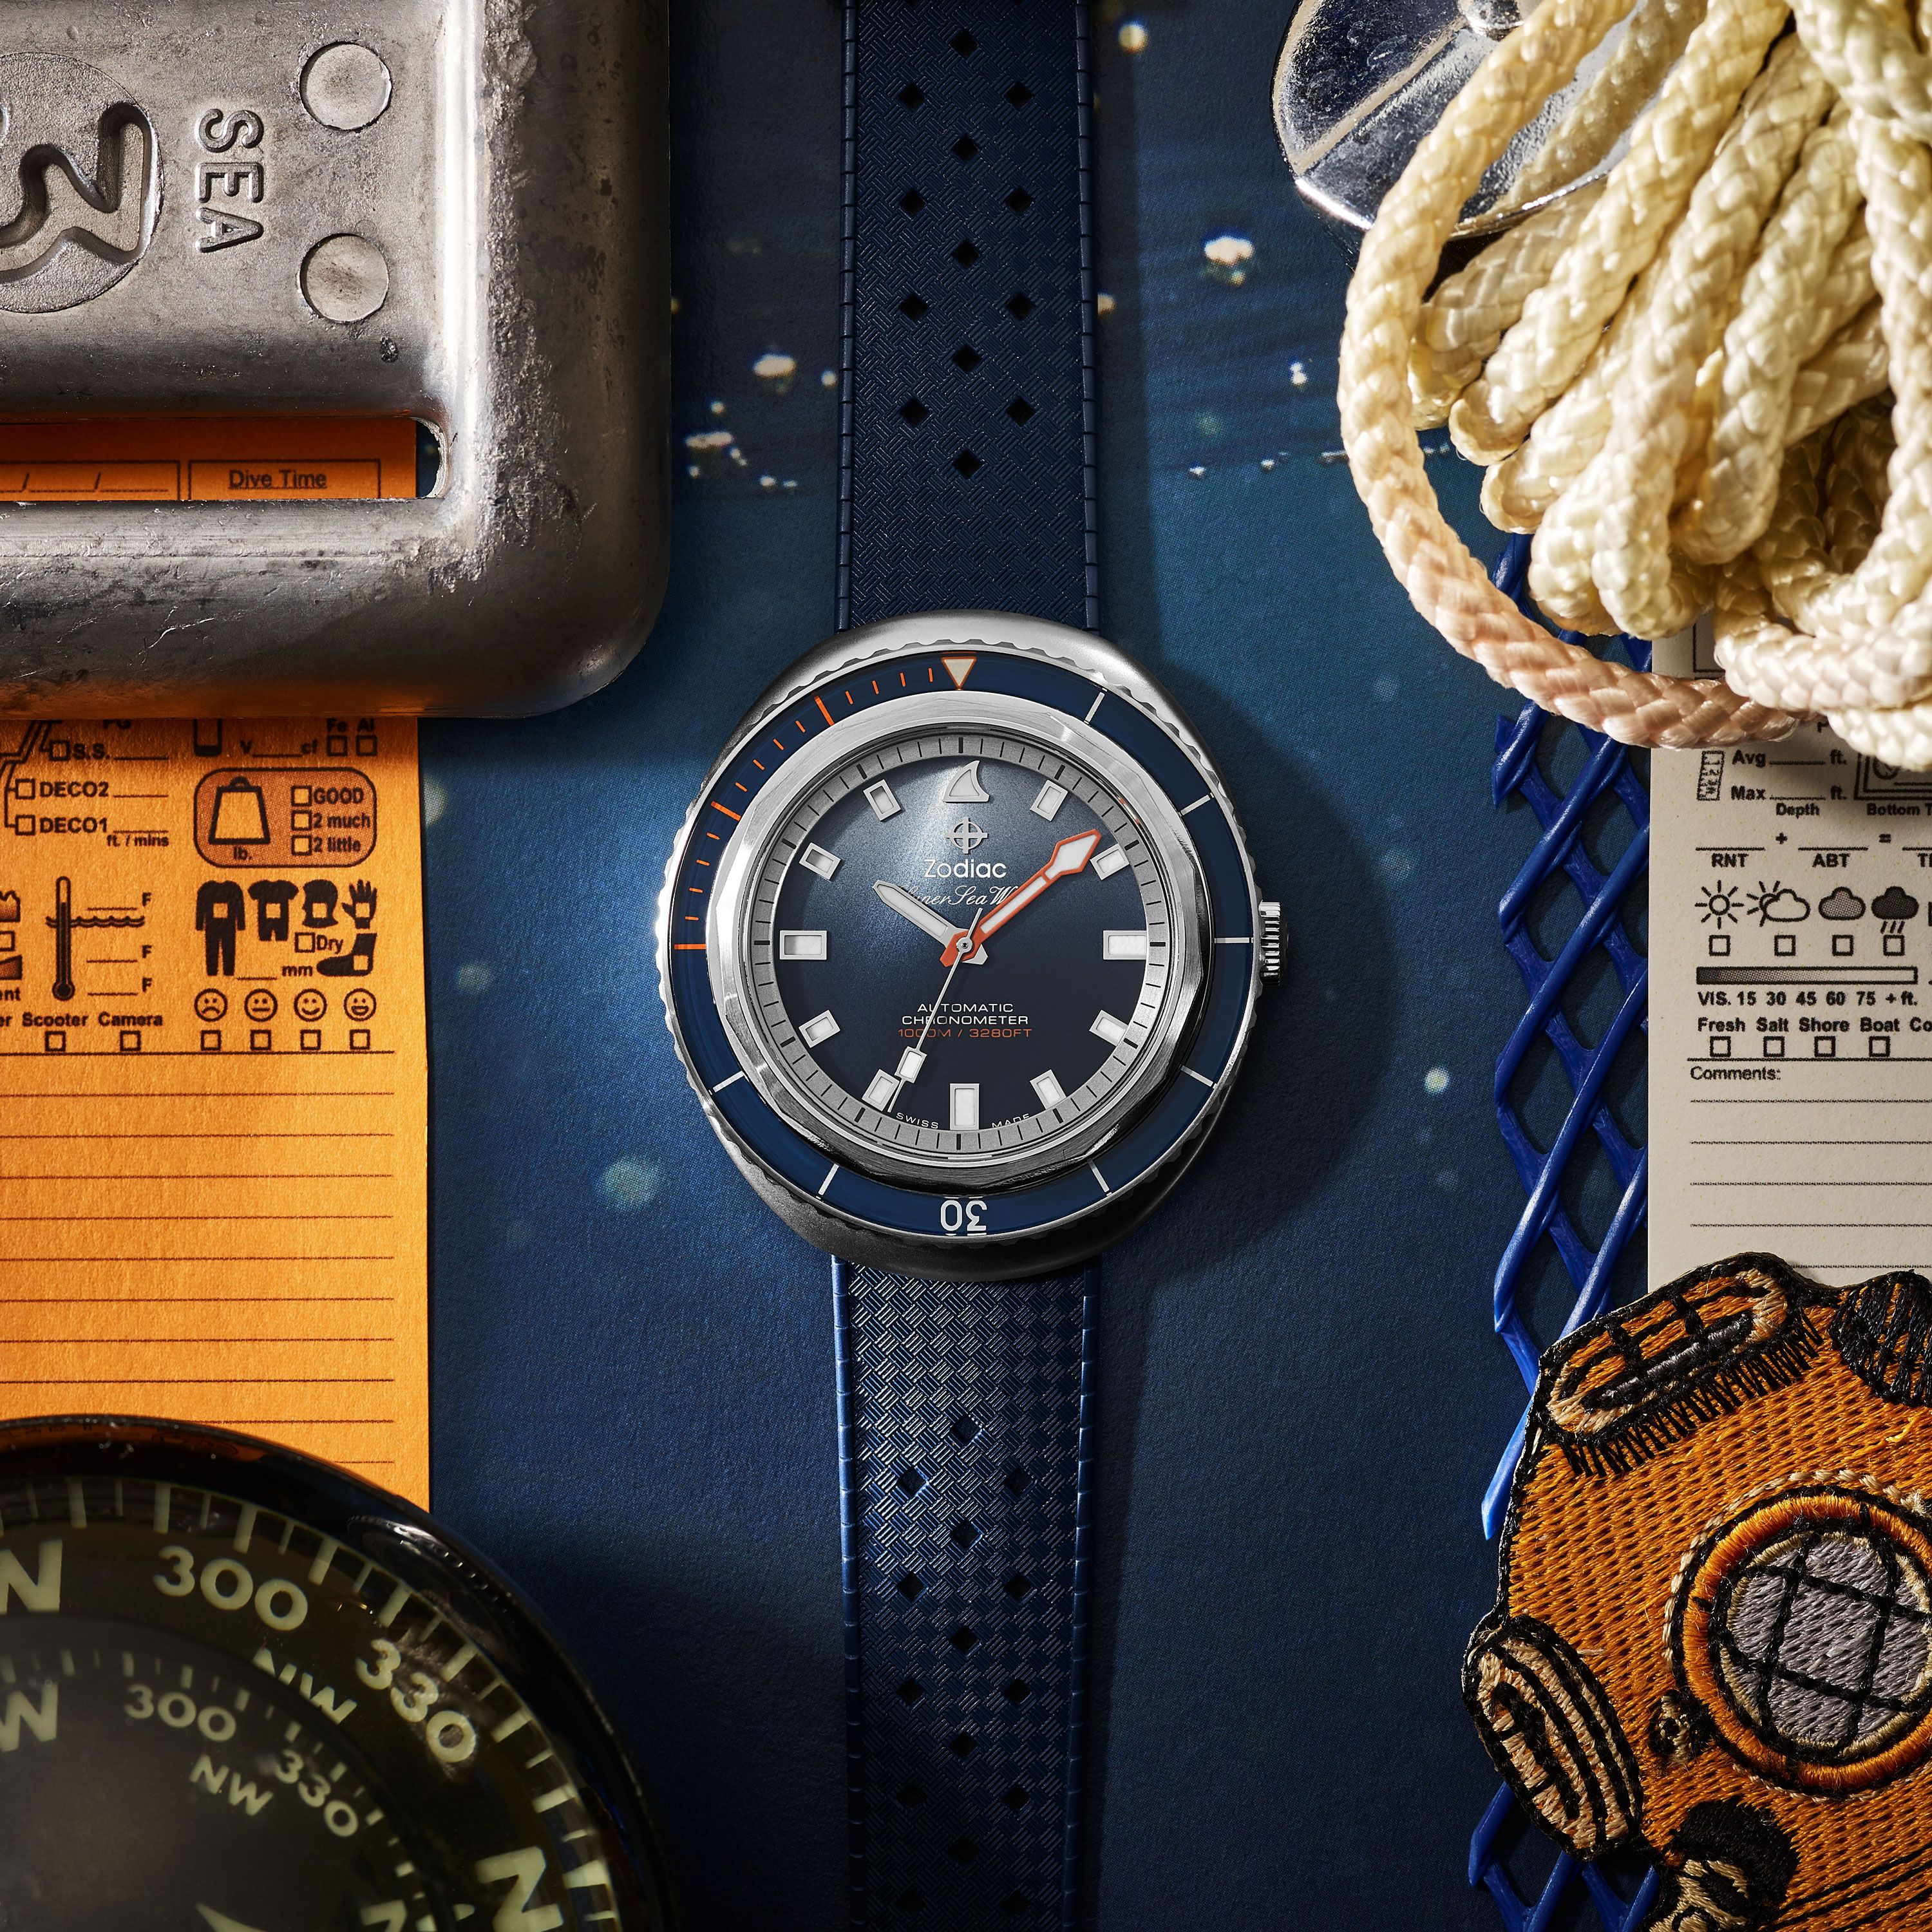 Zodiac Teamed Up With Nature Photographer Andy Mann to Break the Rules of Swiss Timepieces